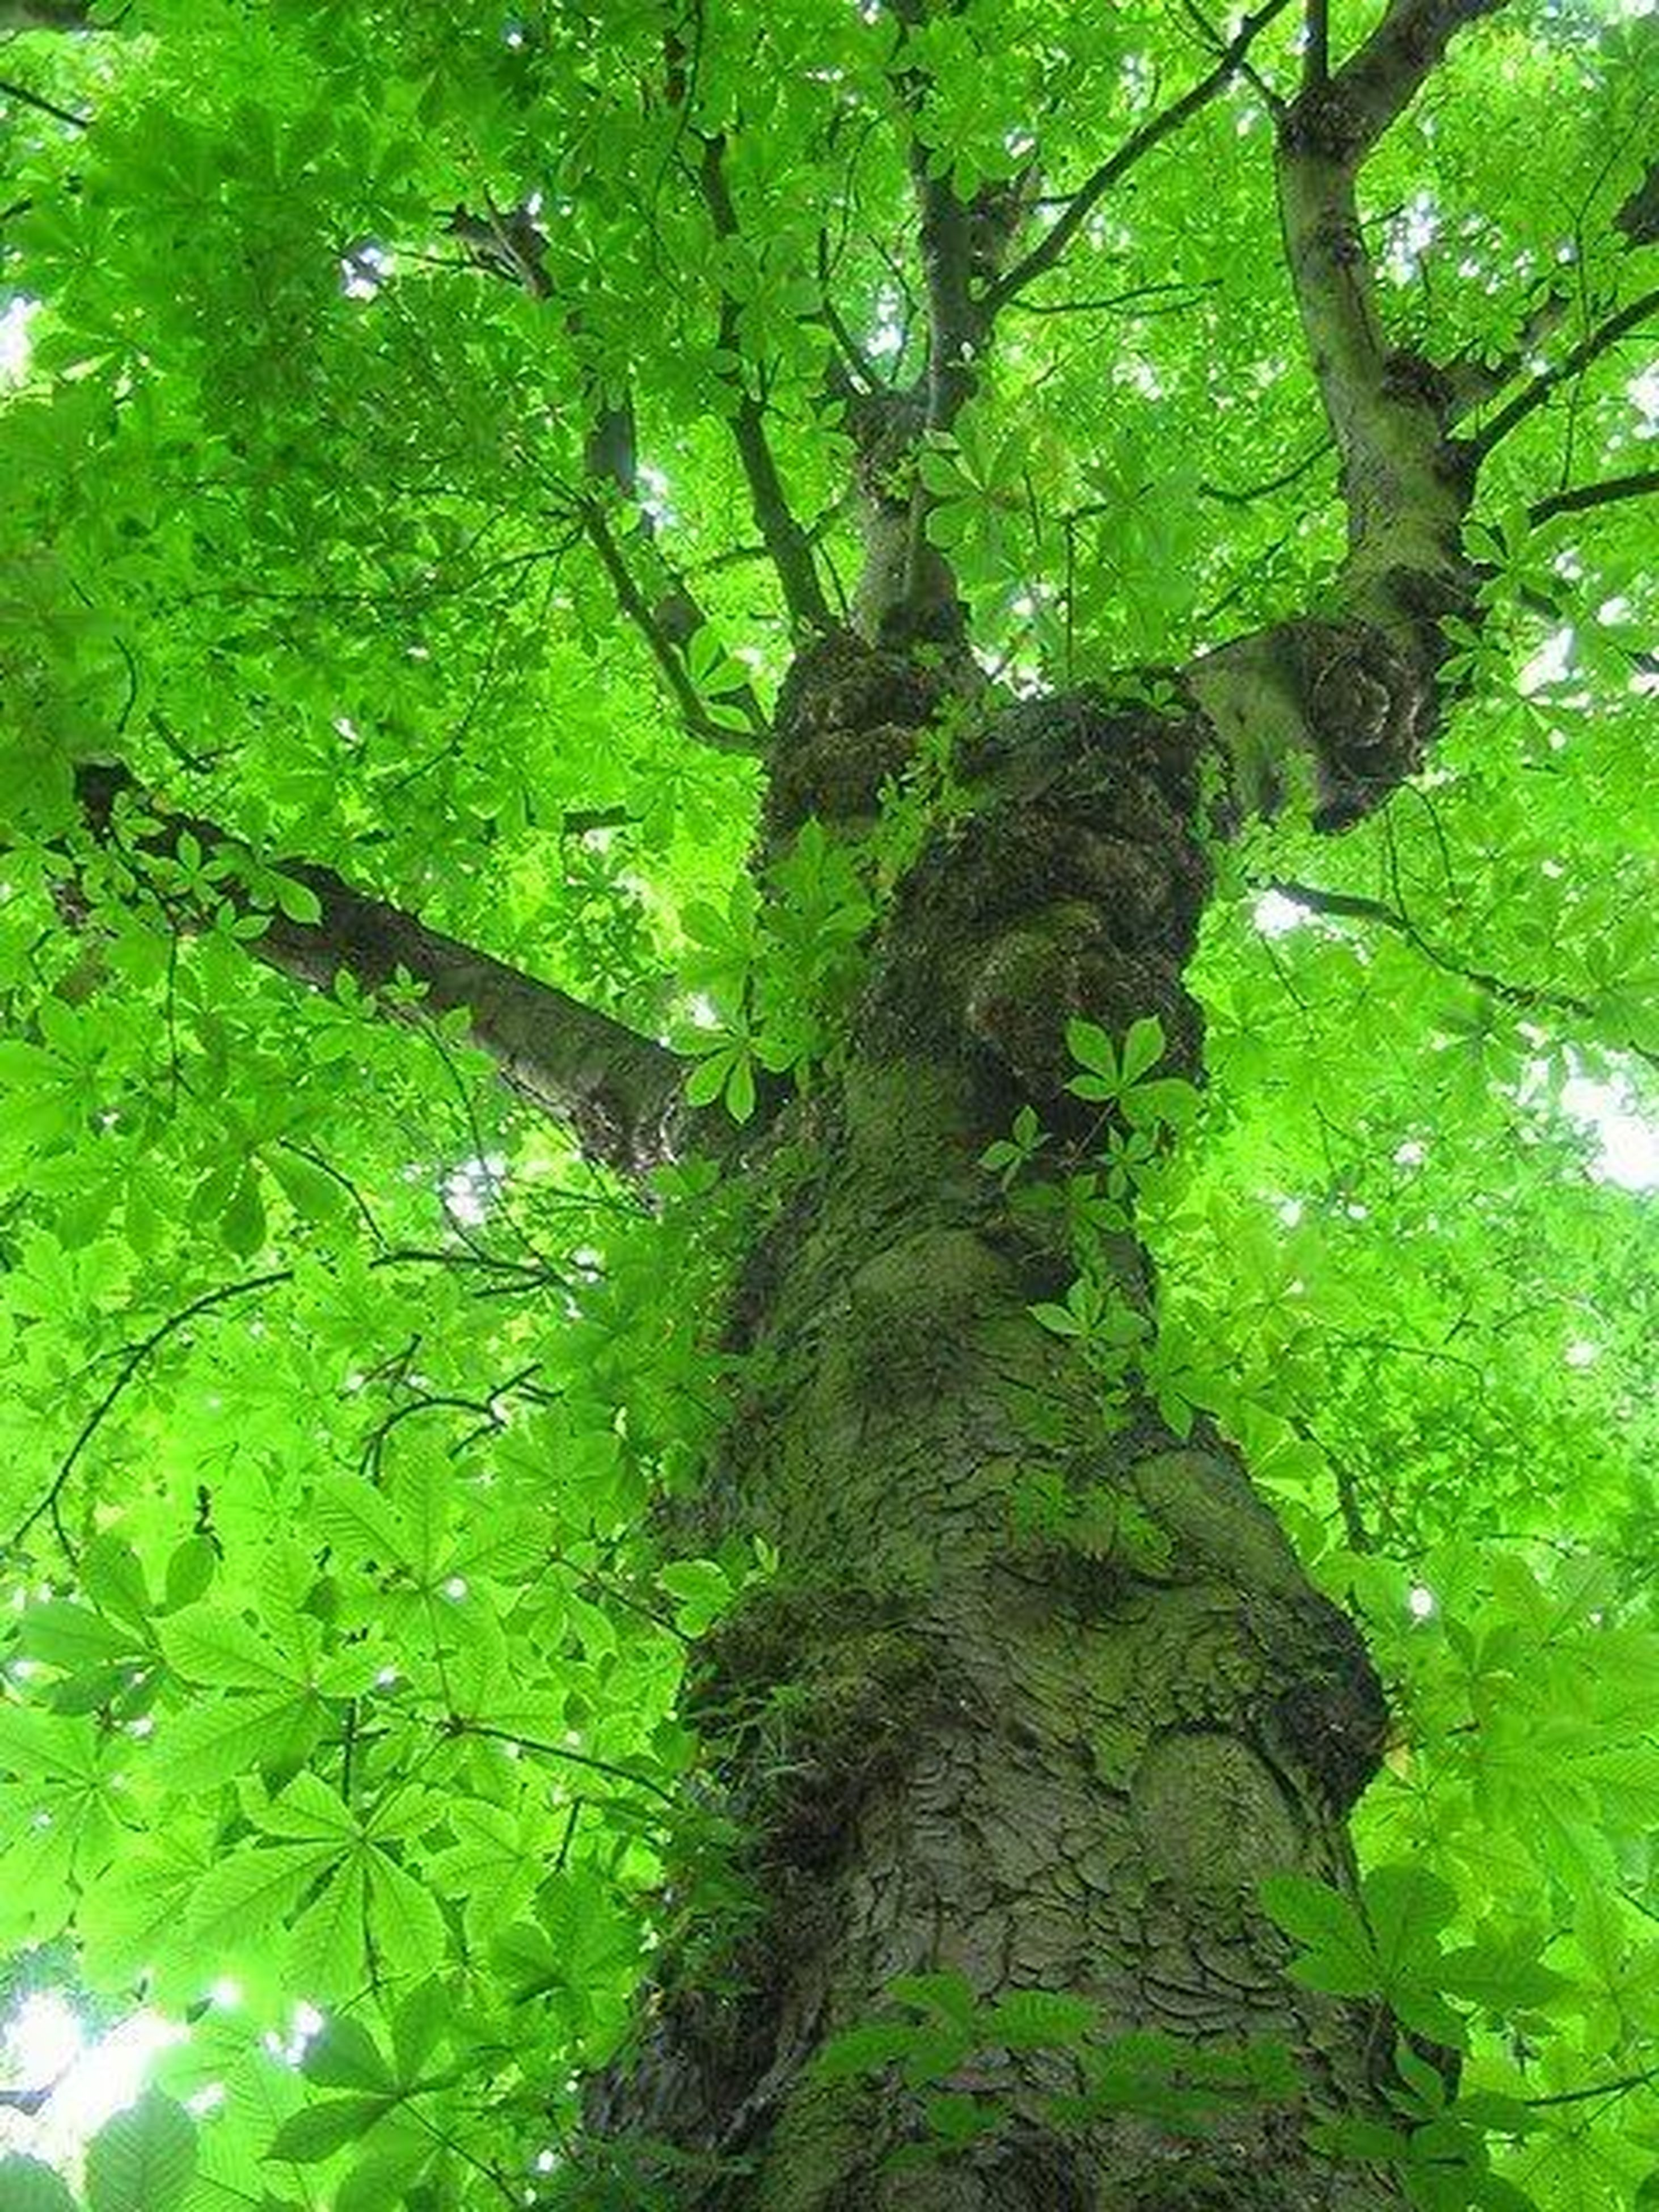 tree, green color, growth, forest, nature, tranquility, branch, beauty in nature, lush foliage, leaf, tree trunk, green, tranquil scene, low angle view, plant, scenics, day, outdoors, no people, moss